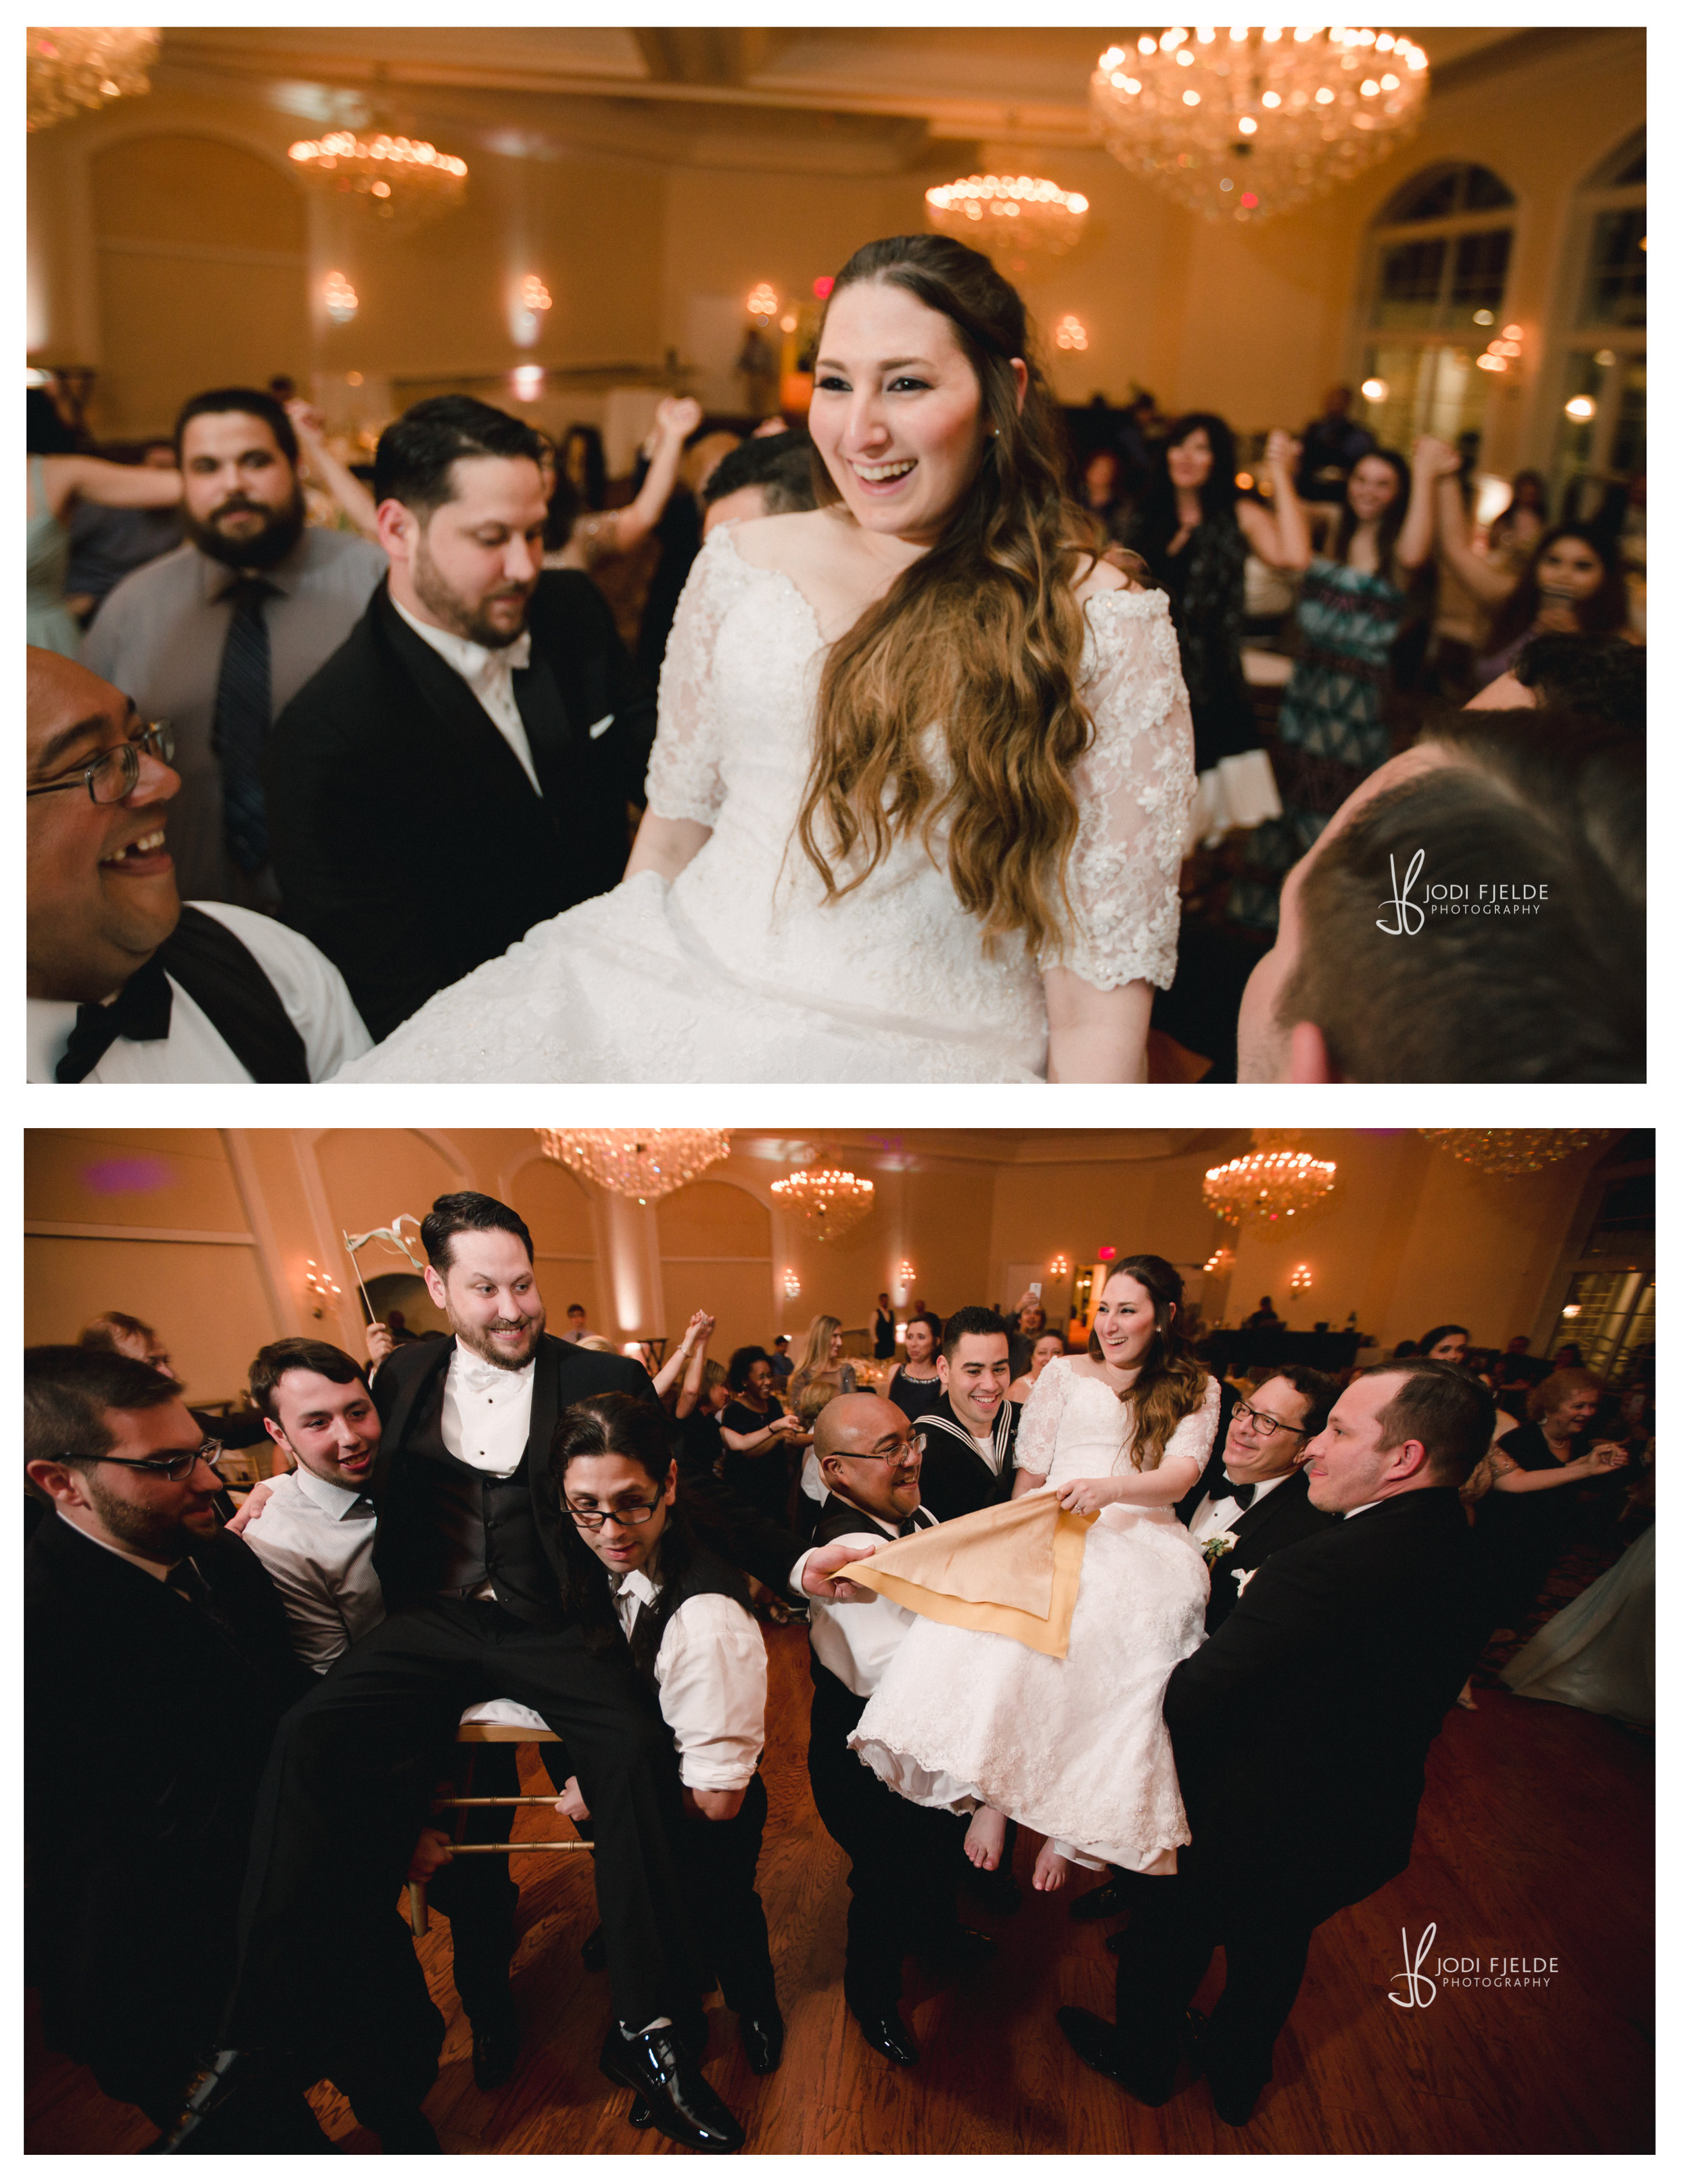 Deer_Creek_Country_Club_Wedding_Jodi_Fjelde_Photography_Andrea_Jason_22.jpg